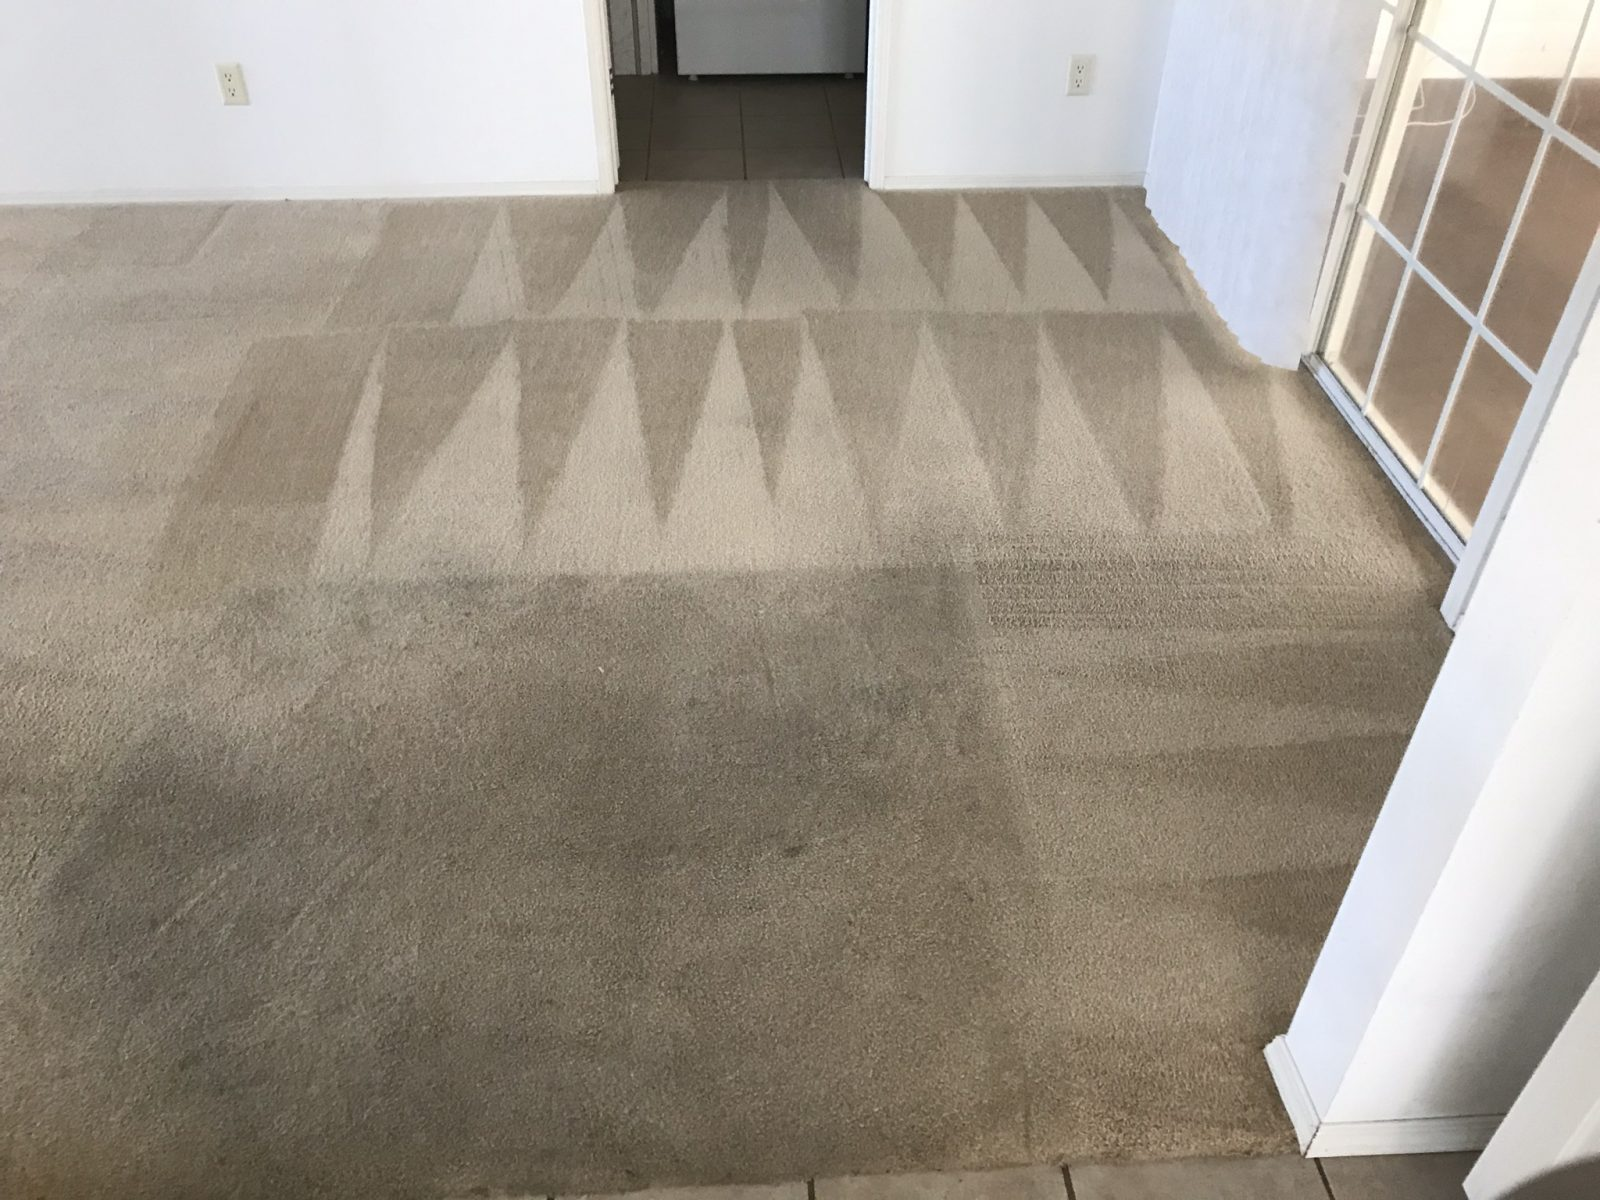 Professional Carpet Cleaning Tarpon Springs Florida by Howards Cleaning Service